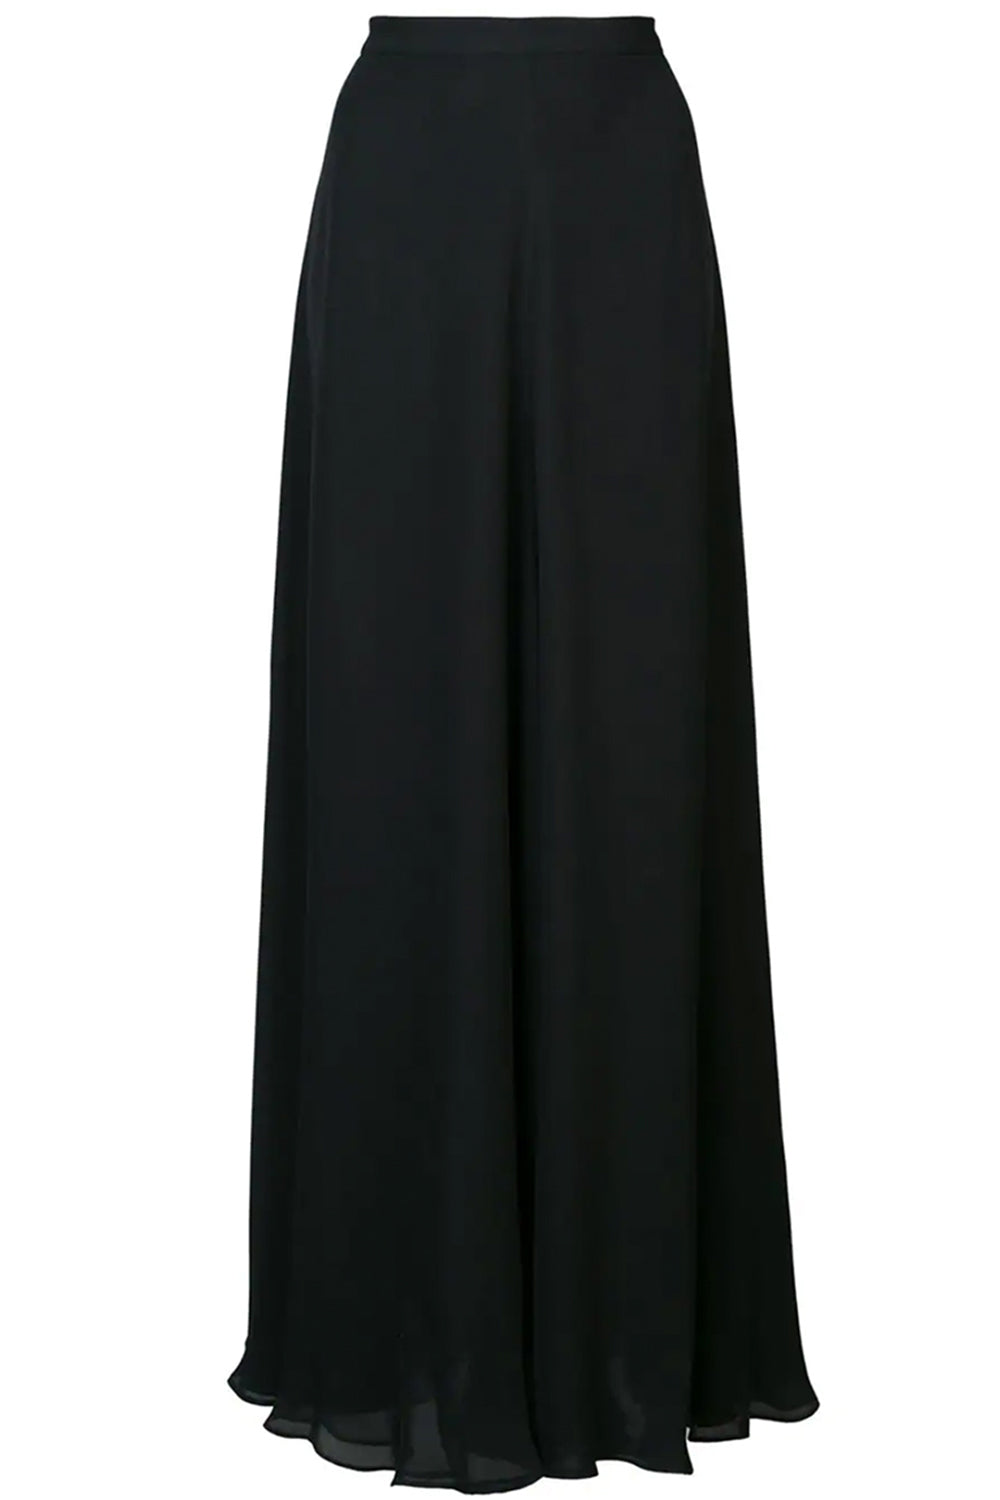 Double Layer Chiffon Skirt in Black